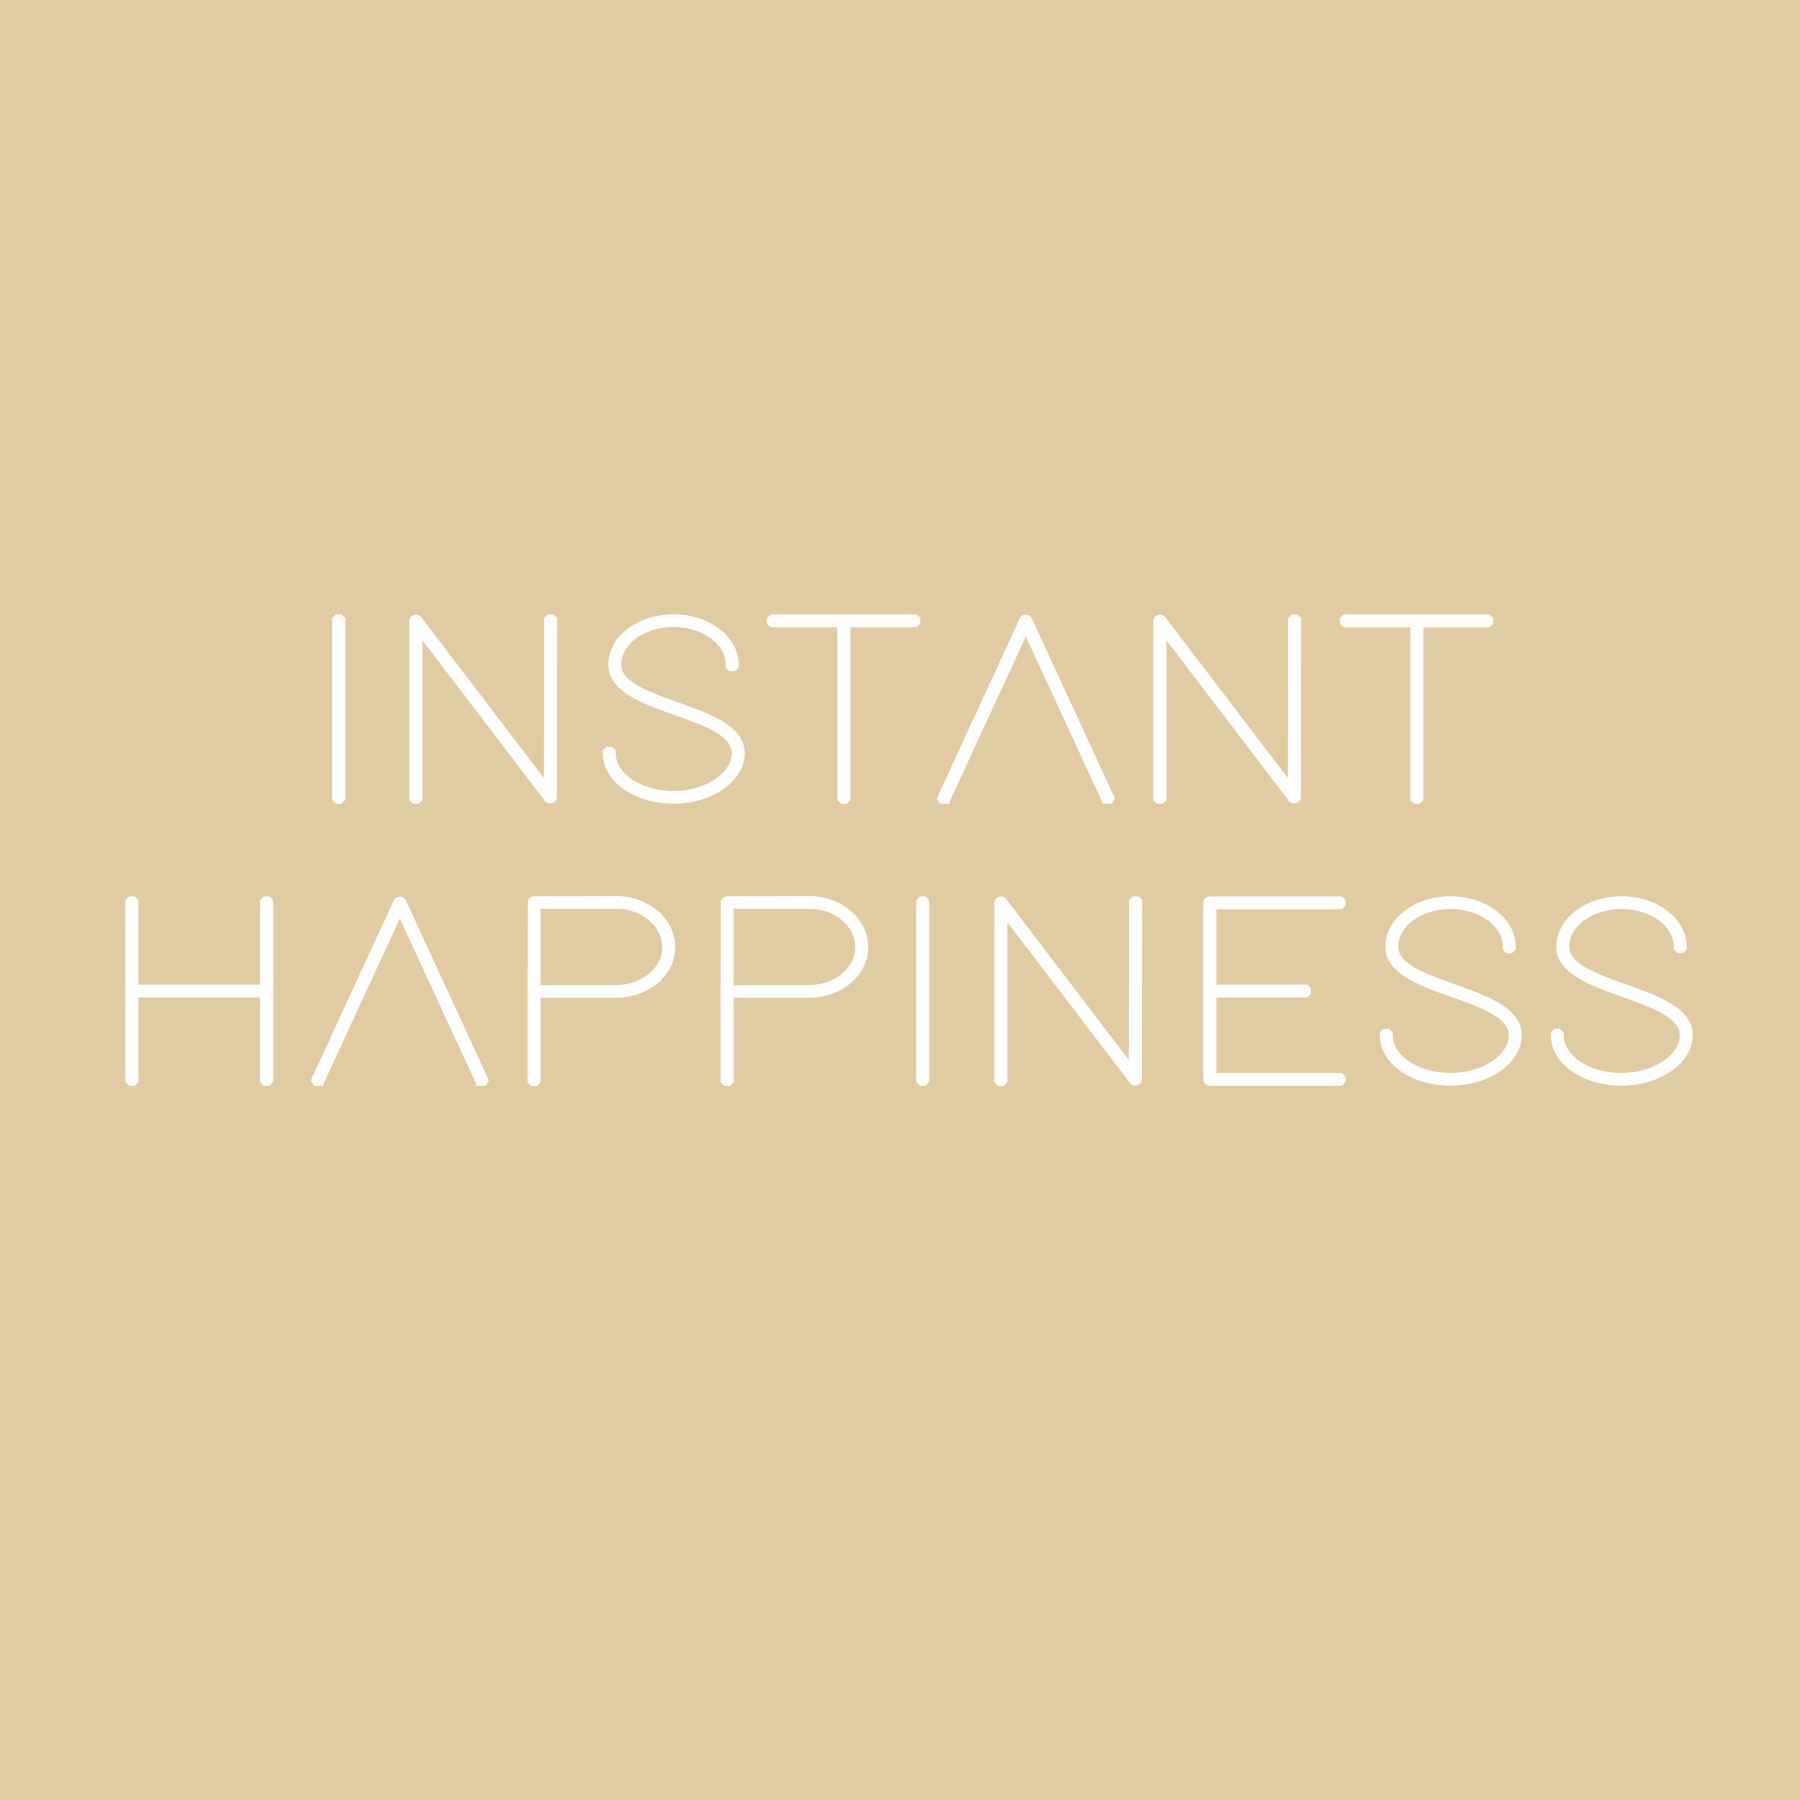 Instant happiness gift card